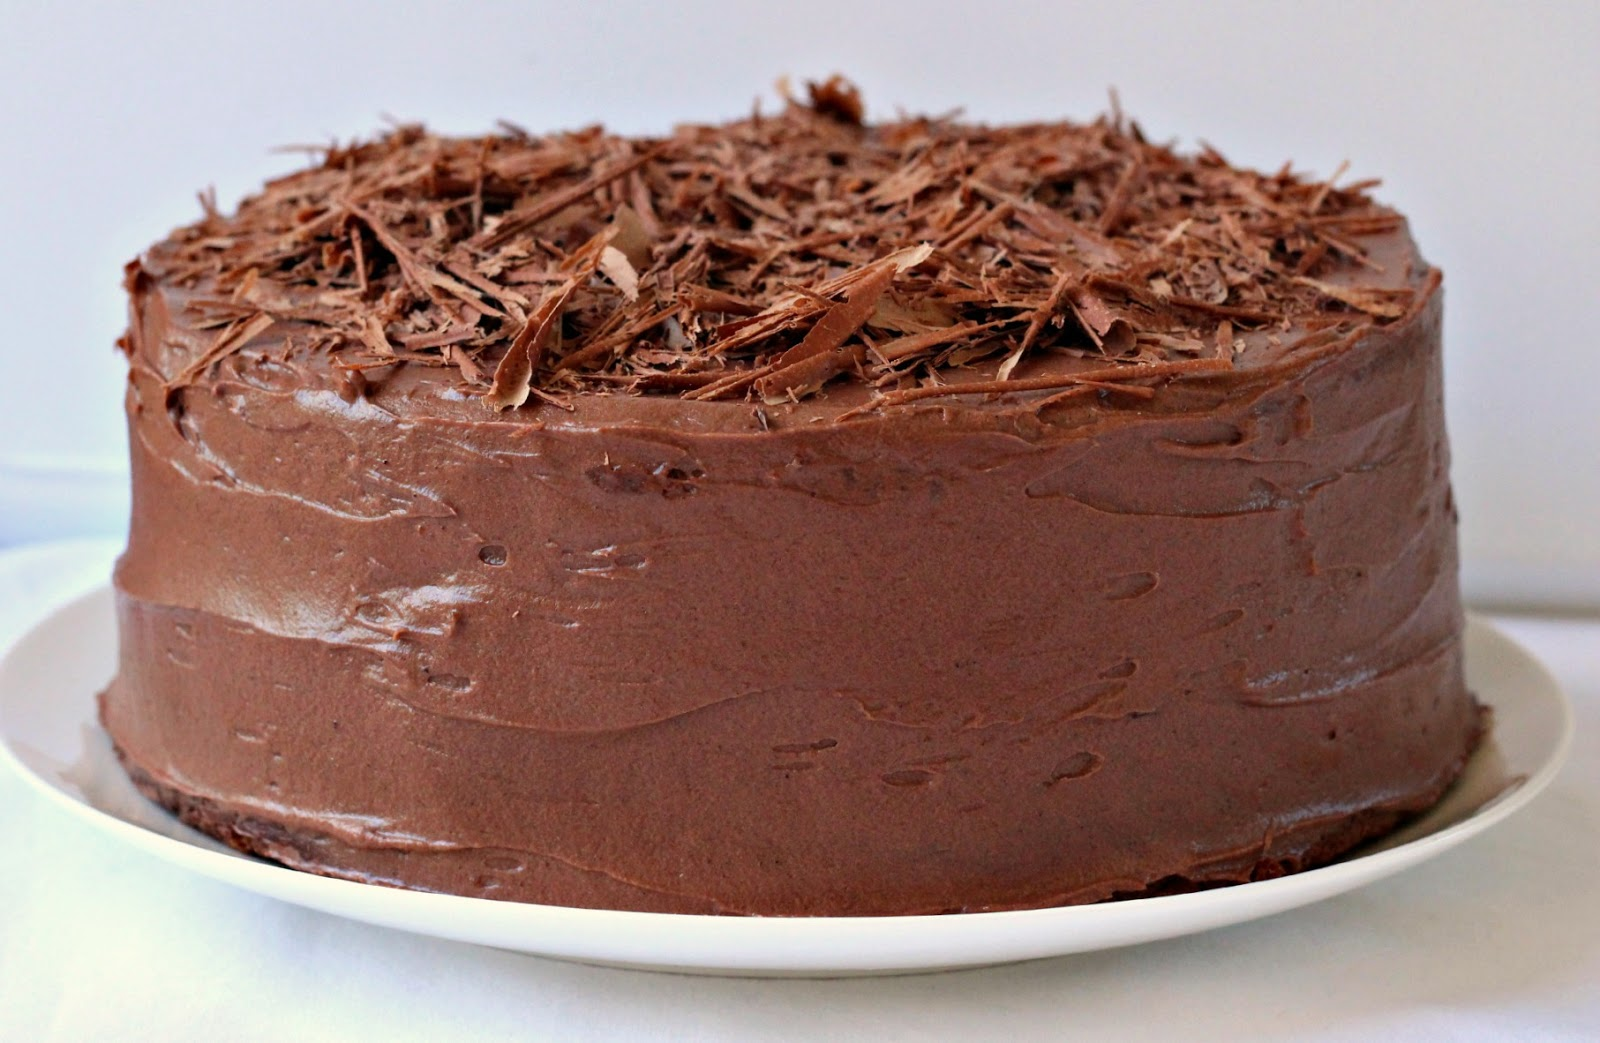 Permalink to Chocolate Cake With Rum Frosting